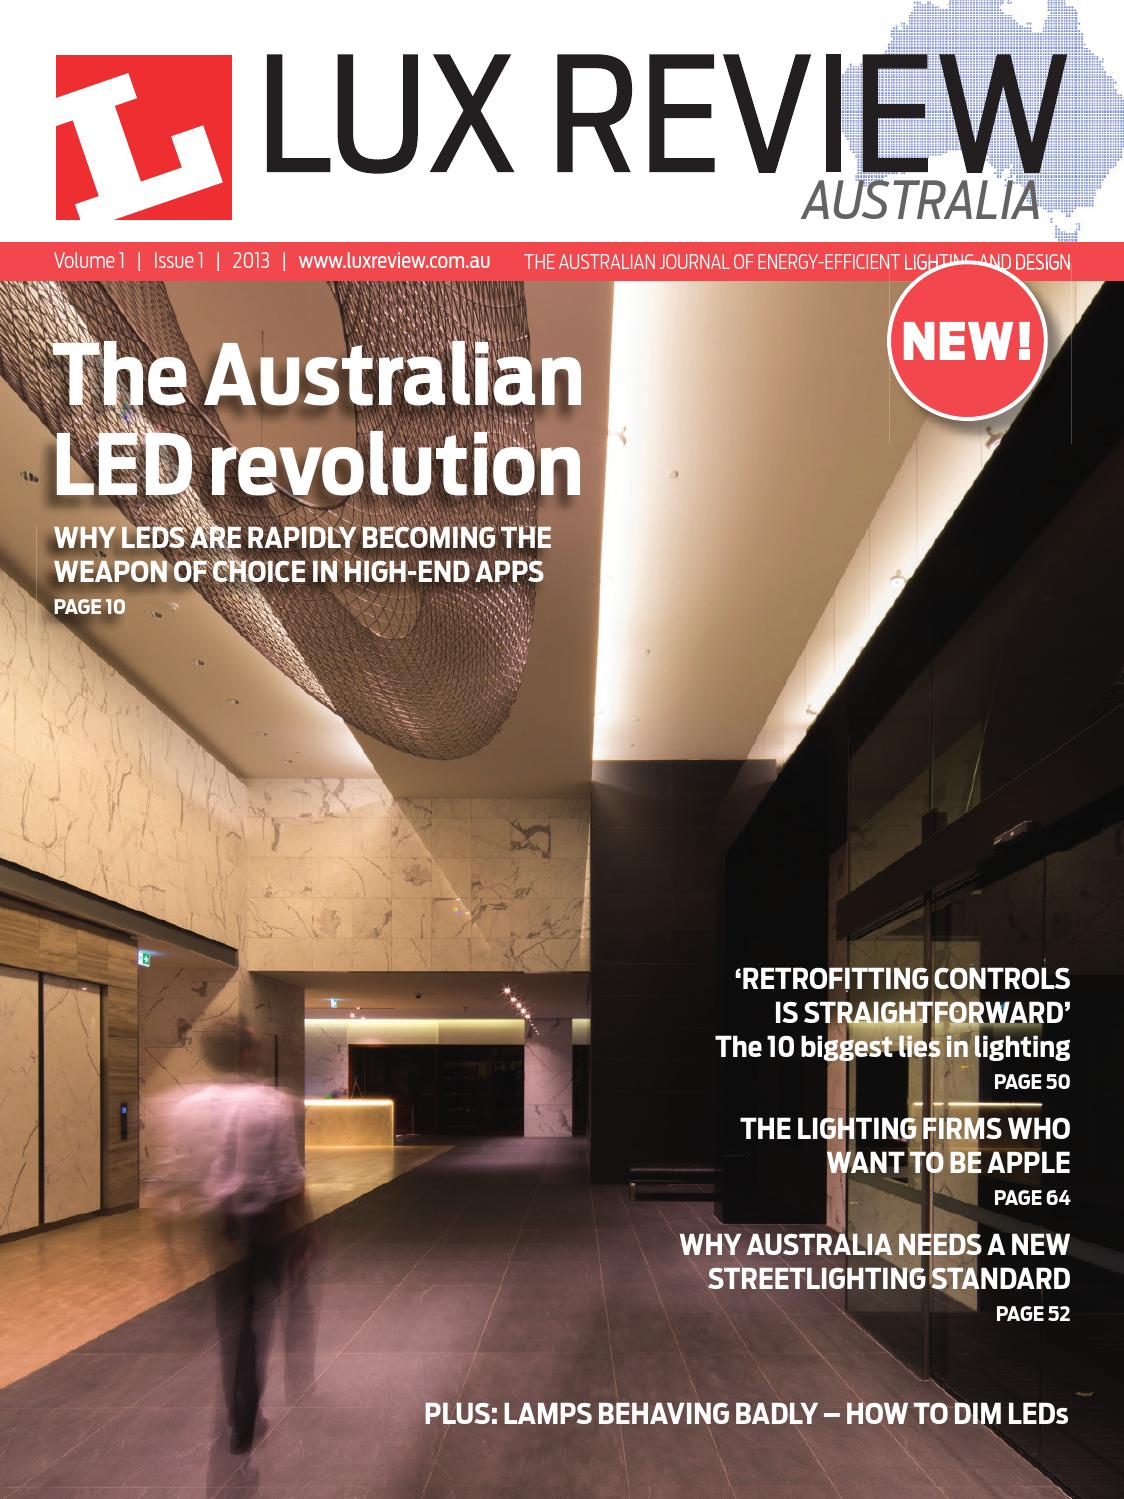 Lux Review Australia Amp Nz Issue 1 By Revo Media Issuu